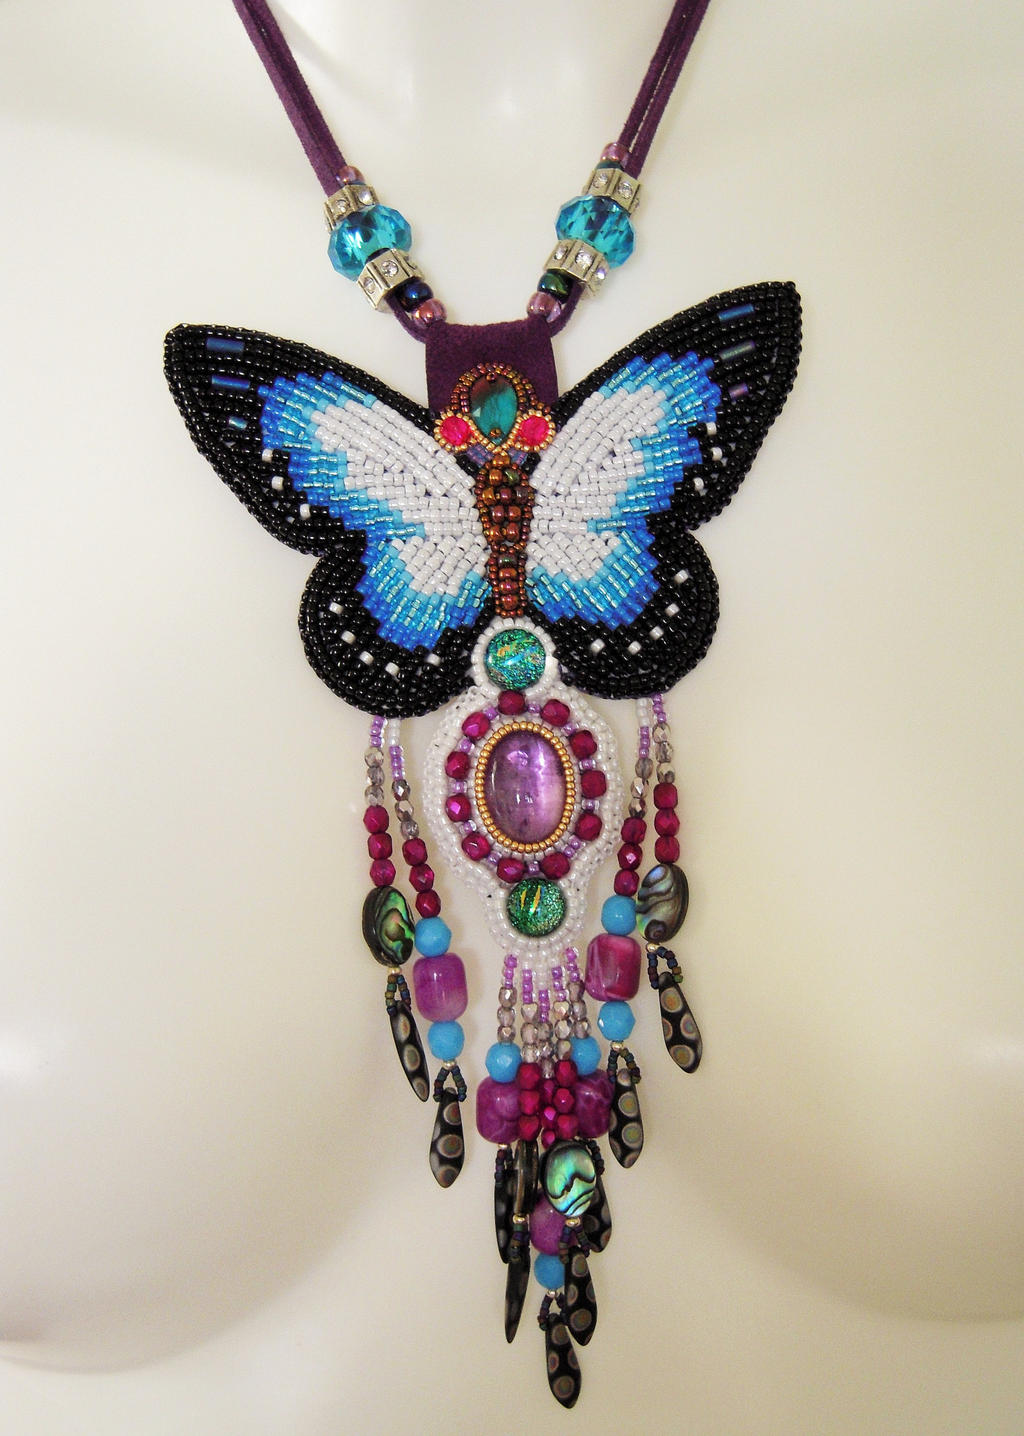 Bead embroidery necklace by priscillascreations on